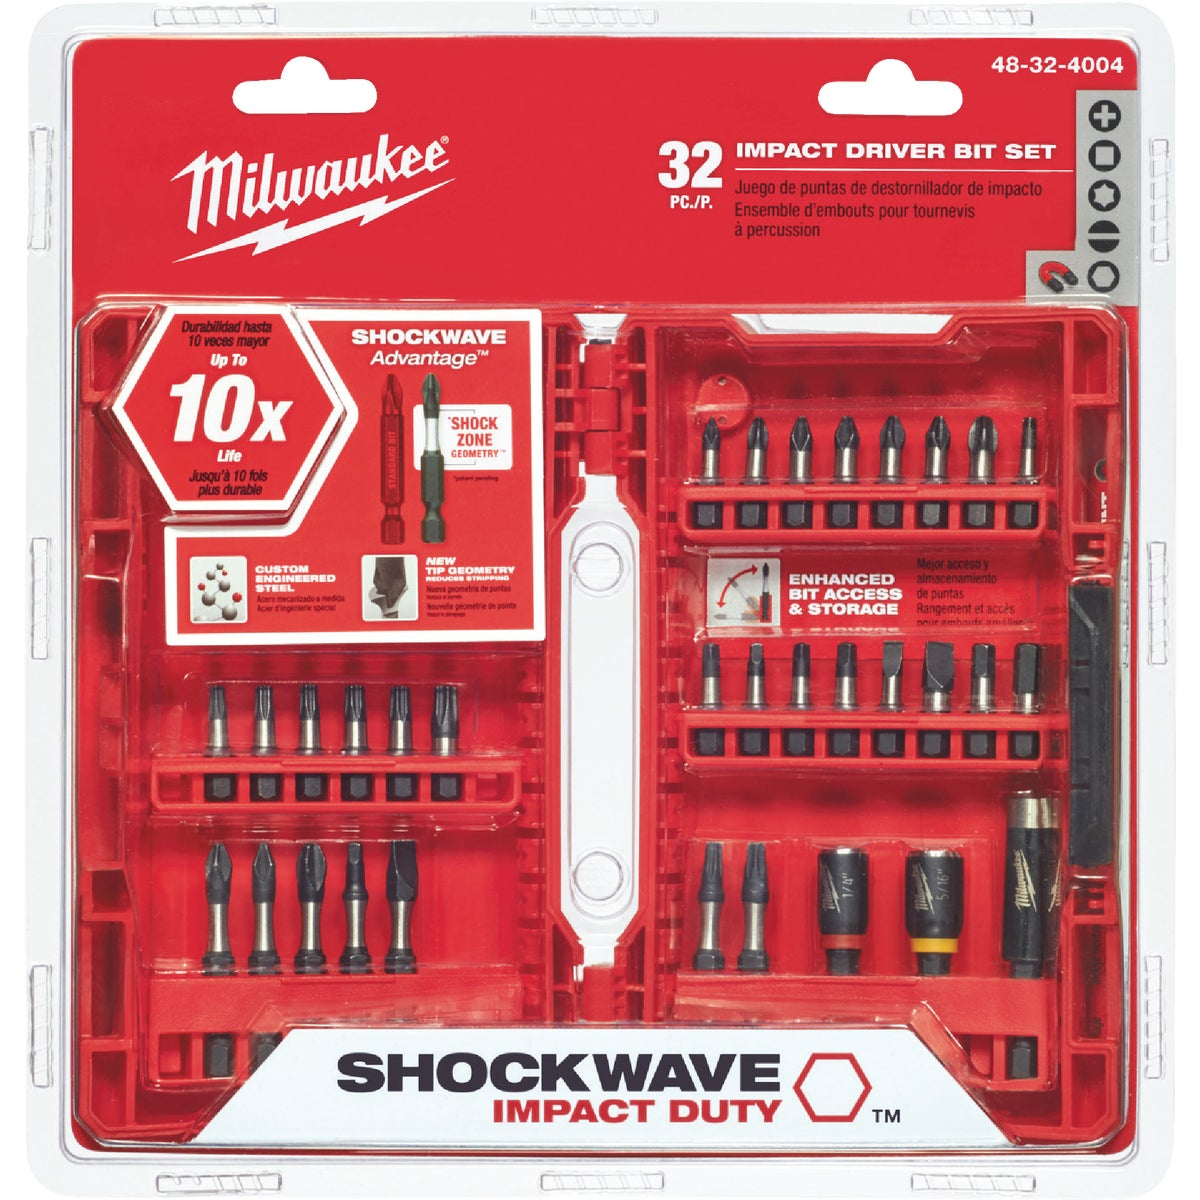 29PC IMPACT BIT SET - 48-32-4401 by Milwaukee Accessory